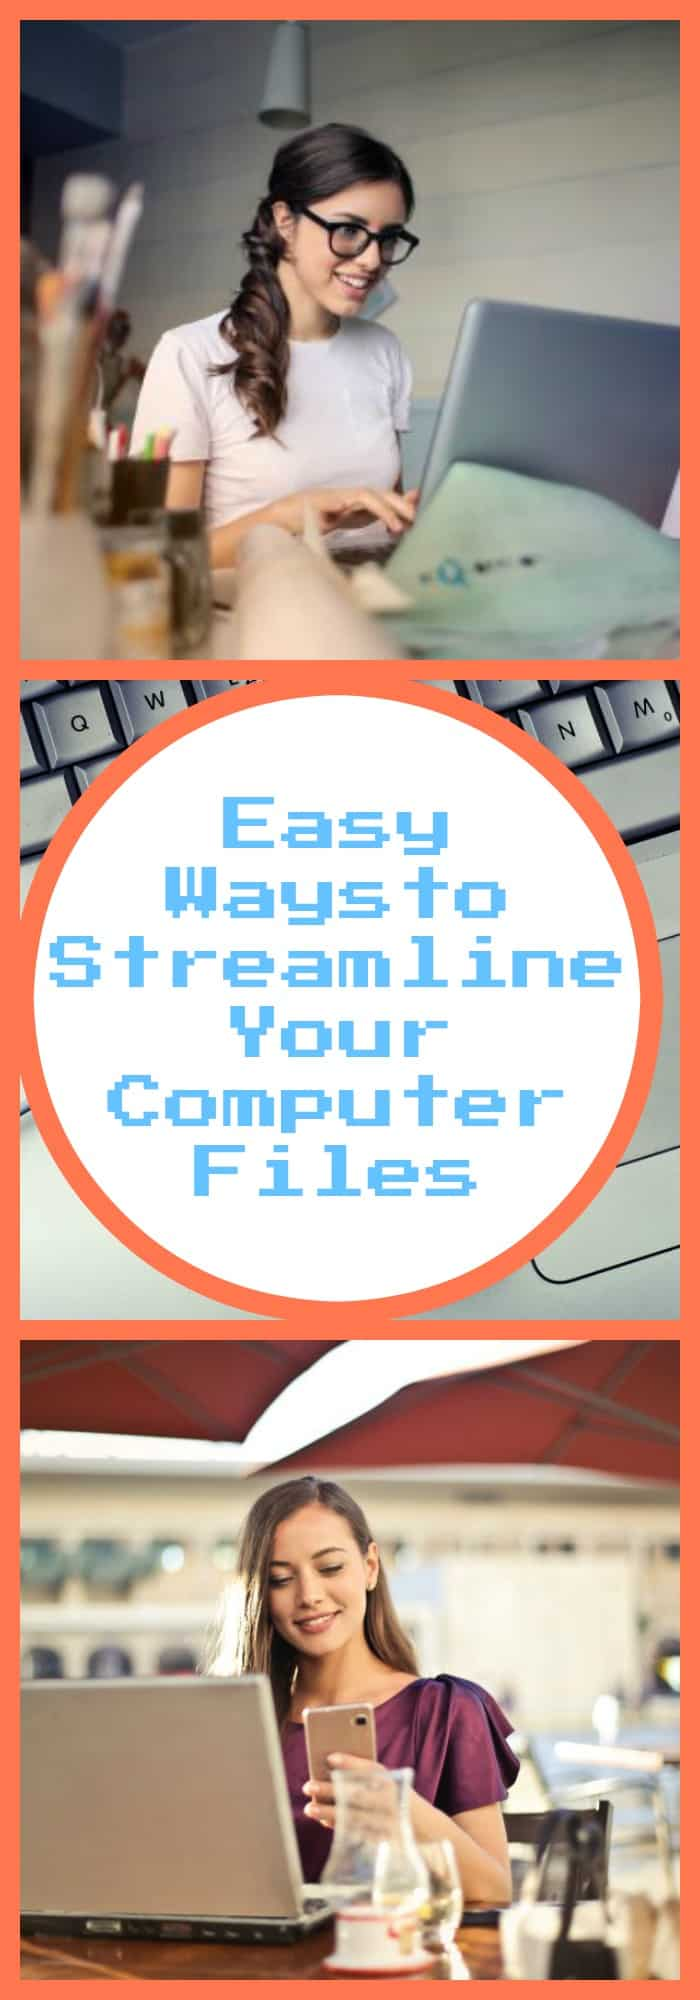 Easy Ways to Streamline Your Computer Files